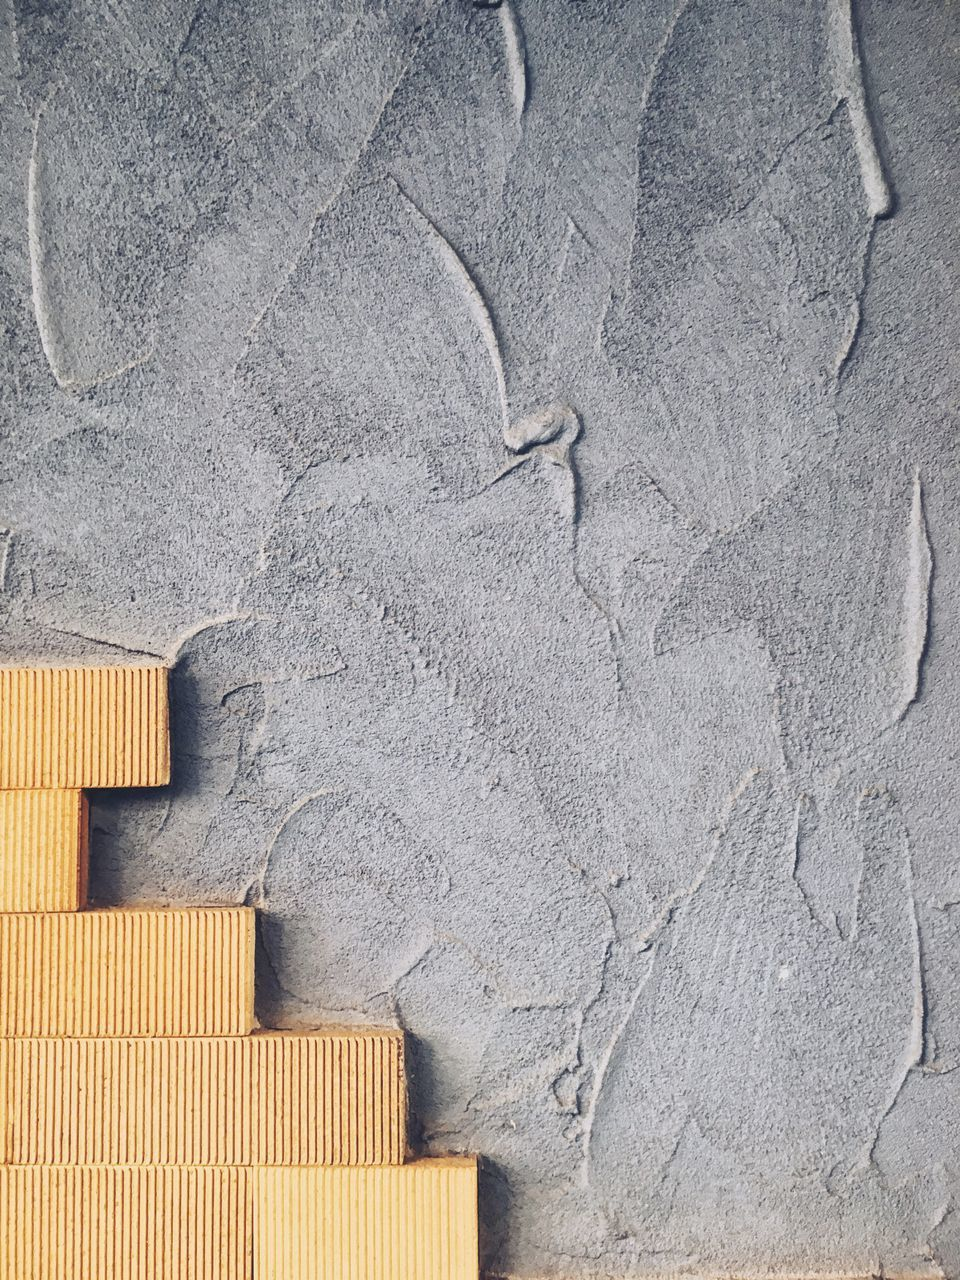 wood - material, textured, no people, close-up, indoors, architecture, day